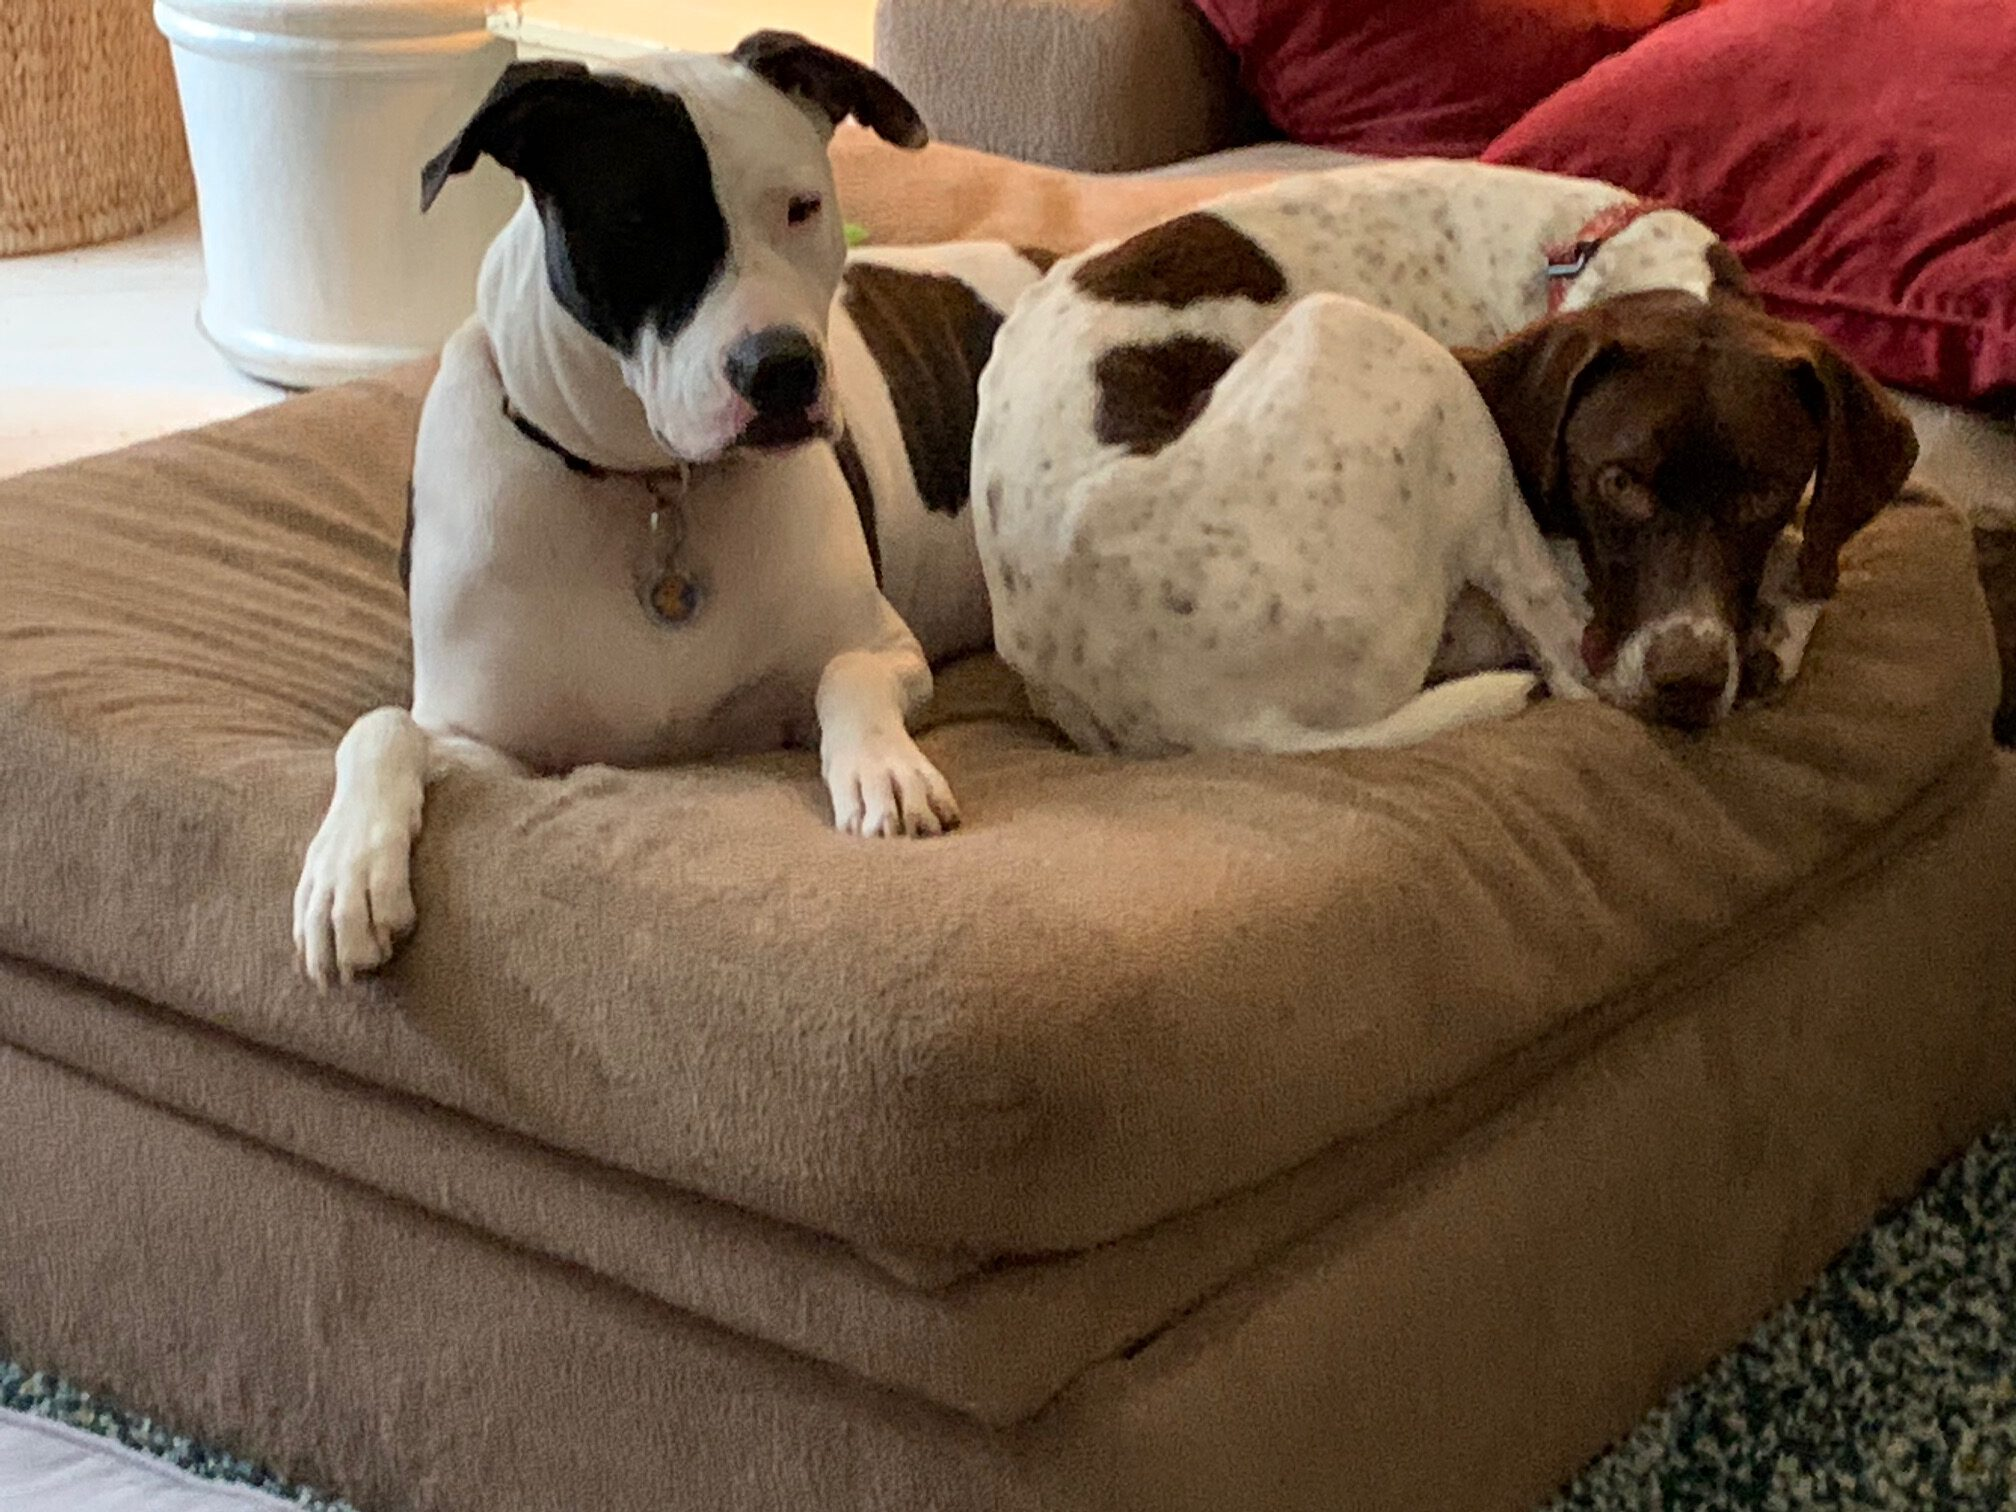 Two dogs snuggled on an ottoman, an example of fostering a dog